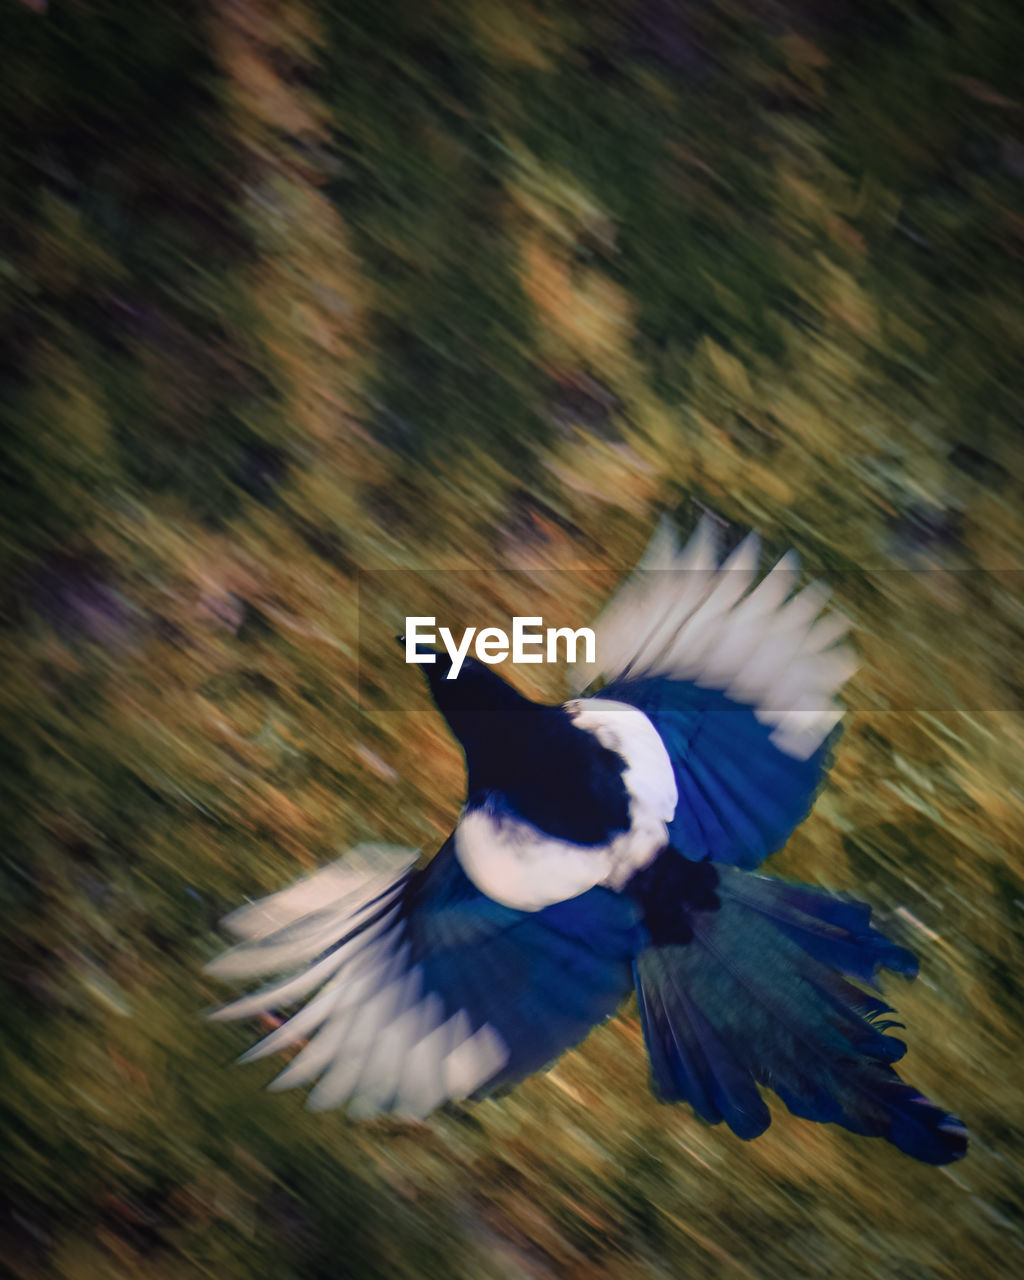 animal themes, flying, animals in the wild, animal wildlife, one animal, animal, bird, spread wings, vertebrate, blurred motion, motion, no people, nature, day, mid-air, beauty in nature, outdoors, blue, speed, focus on foreground, flapping